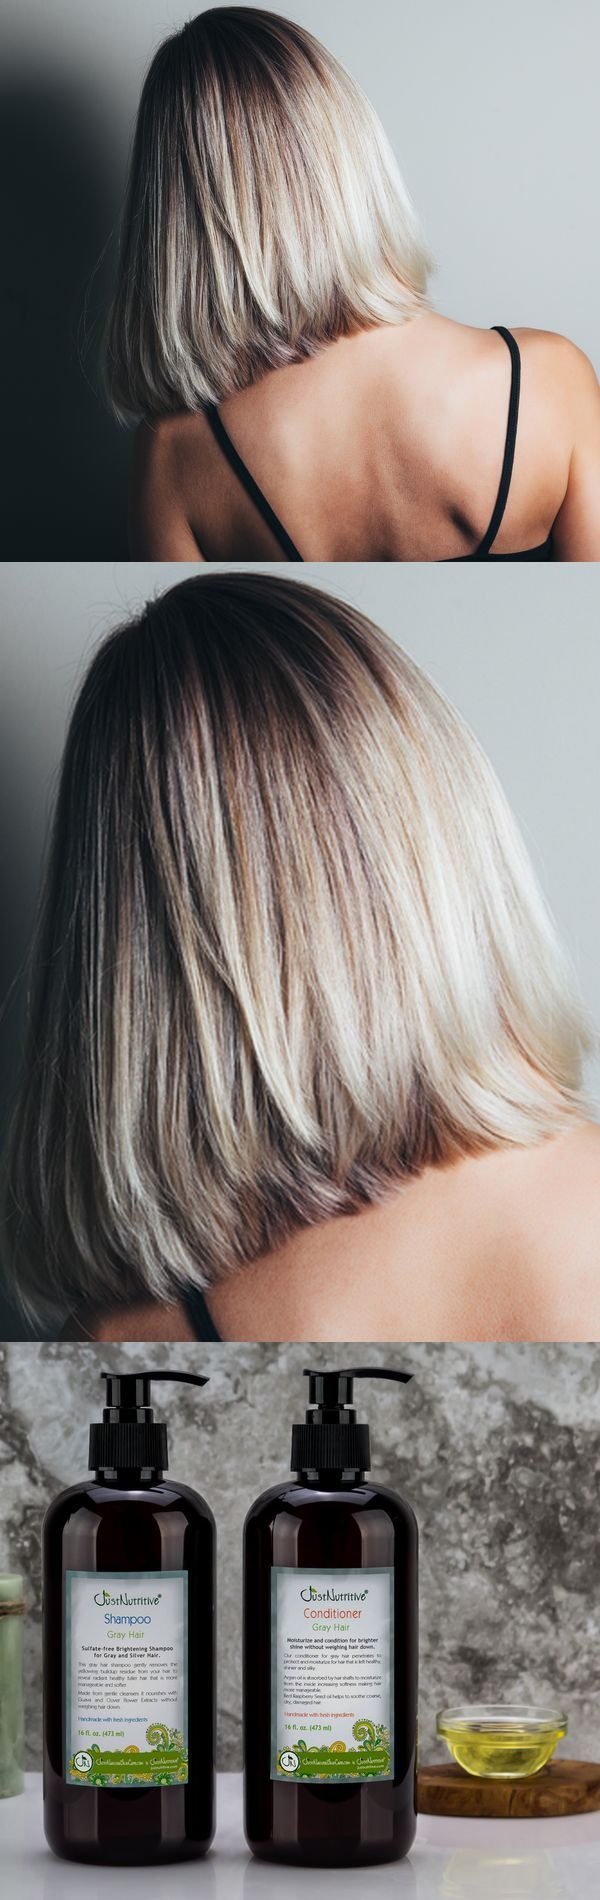 I have had grey/white hair for about 3 years now. It's starting to get lots of white in it. I was concerned about it getting brassy, yellow tones in it. I have researched other shampoos that are purple on the market. There are NONE on the market that have